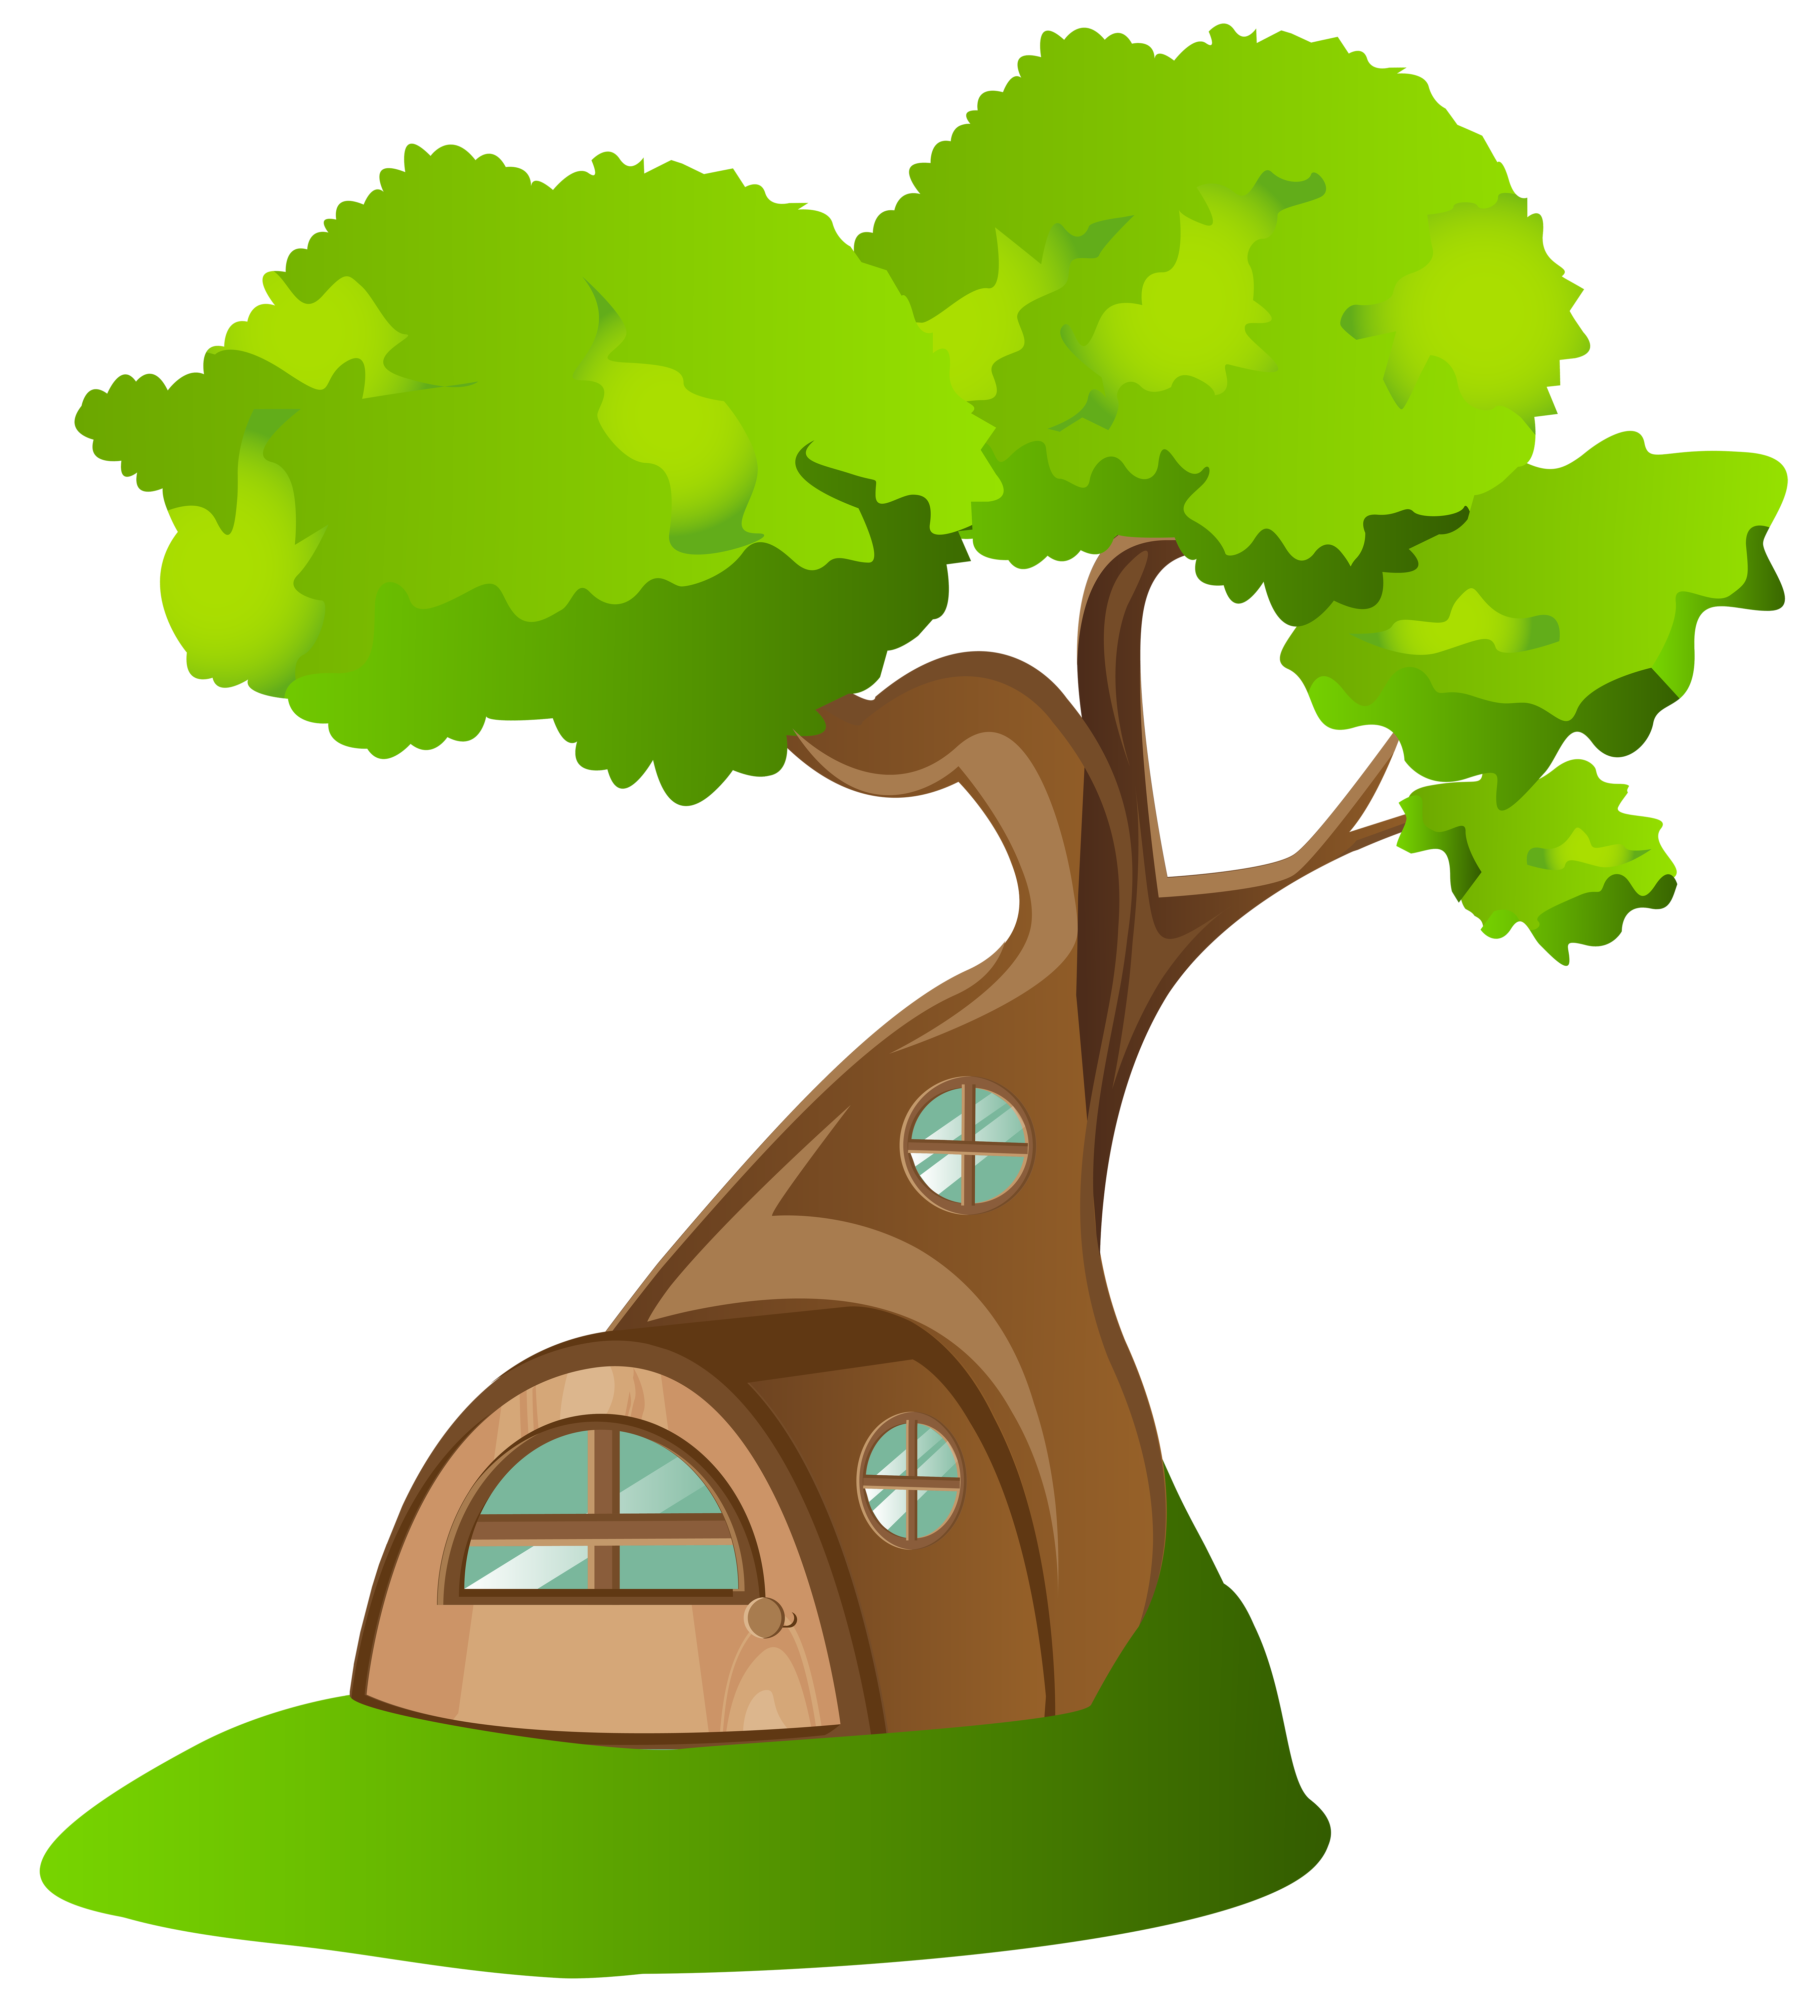 Tree House PNG Clip Art Image.